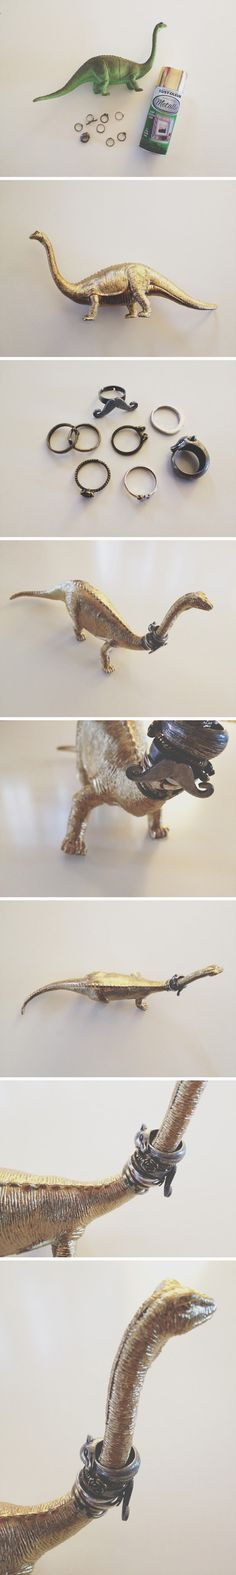 DIY Dino Ring Holder by walkinlove #DIY #Ring_Holder